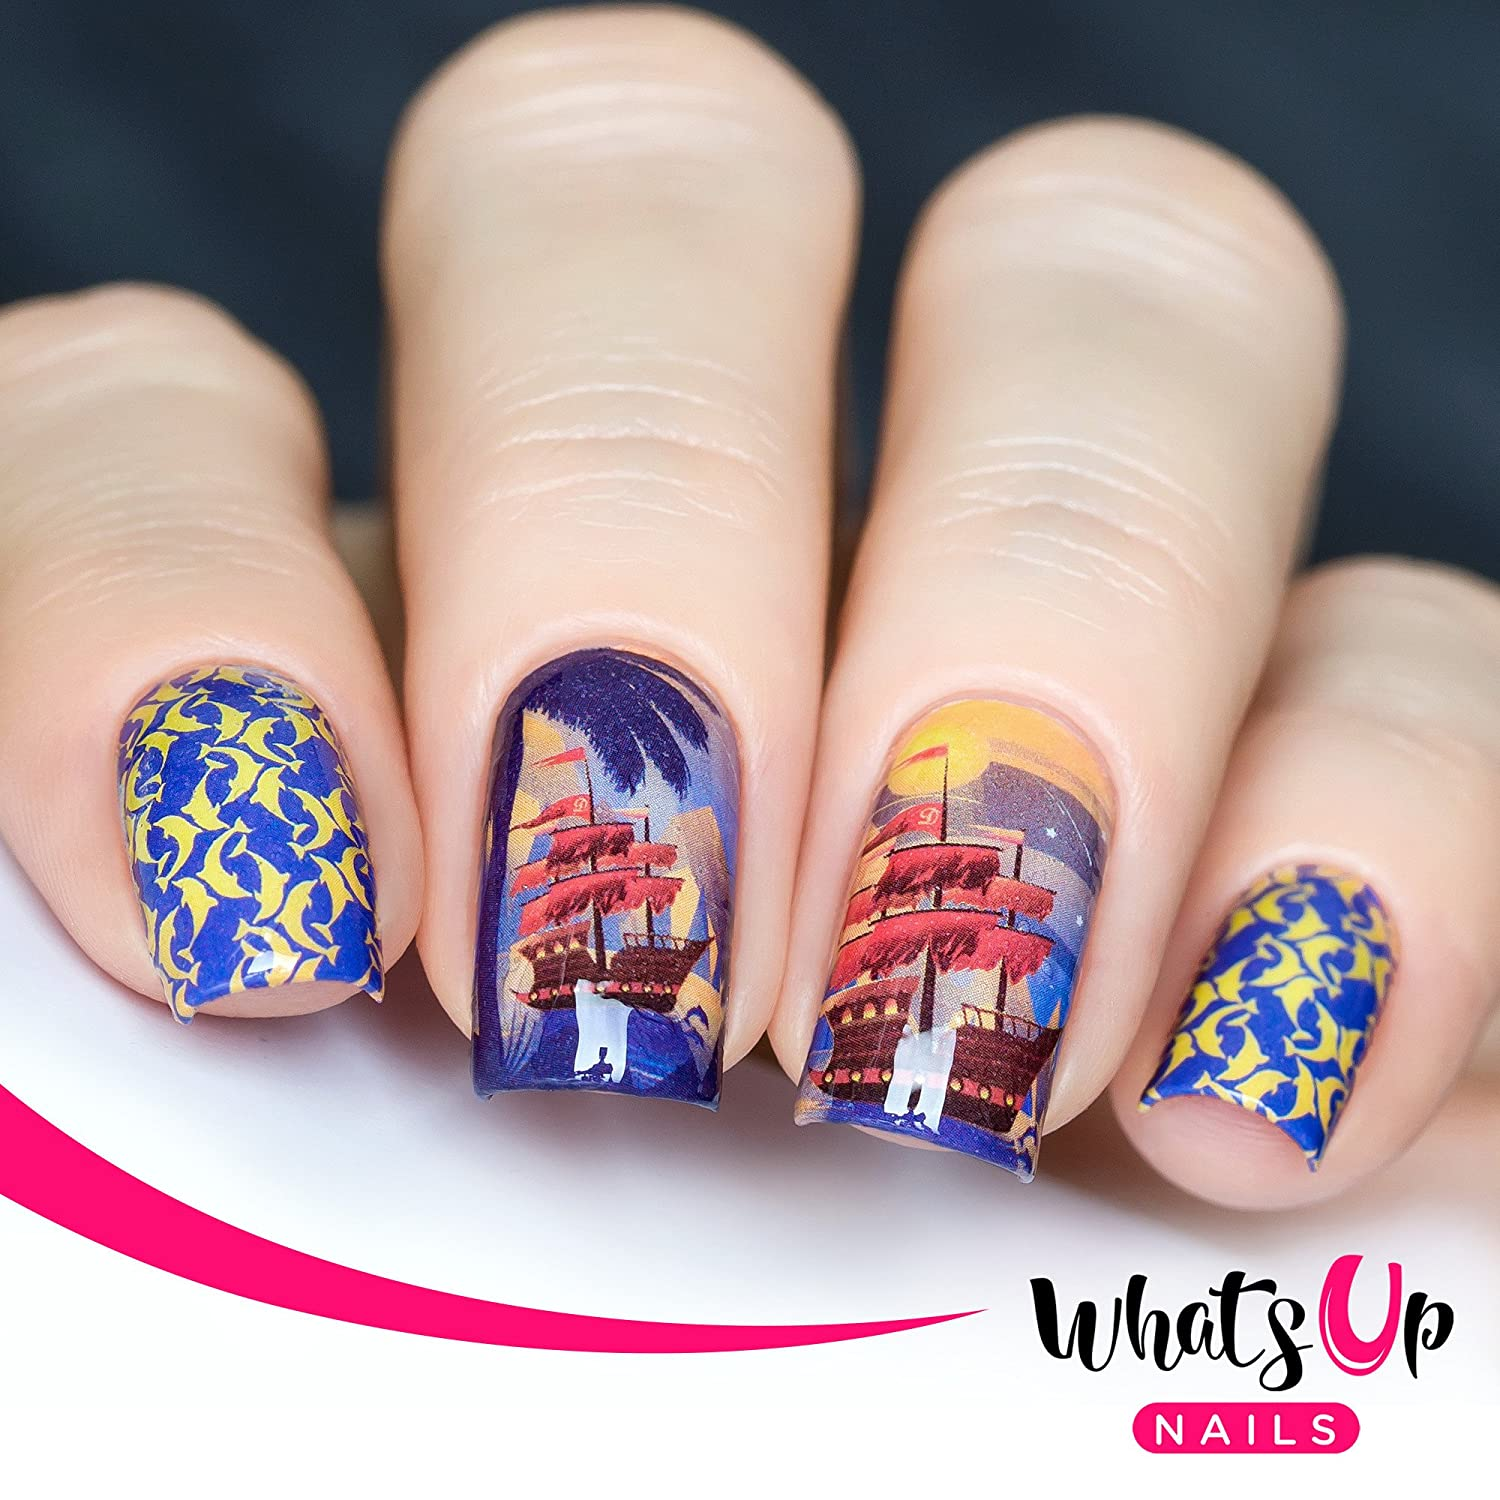 Amazon Com Whats Up Nails P112 Let S Sea The World Water Decals Sliders For Nail Art Design Beauty